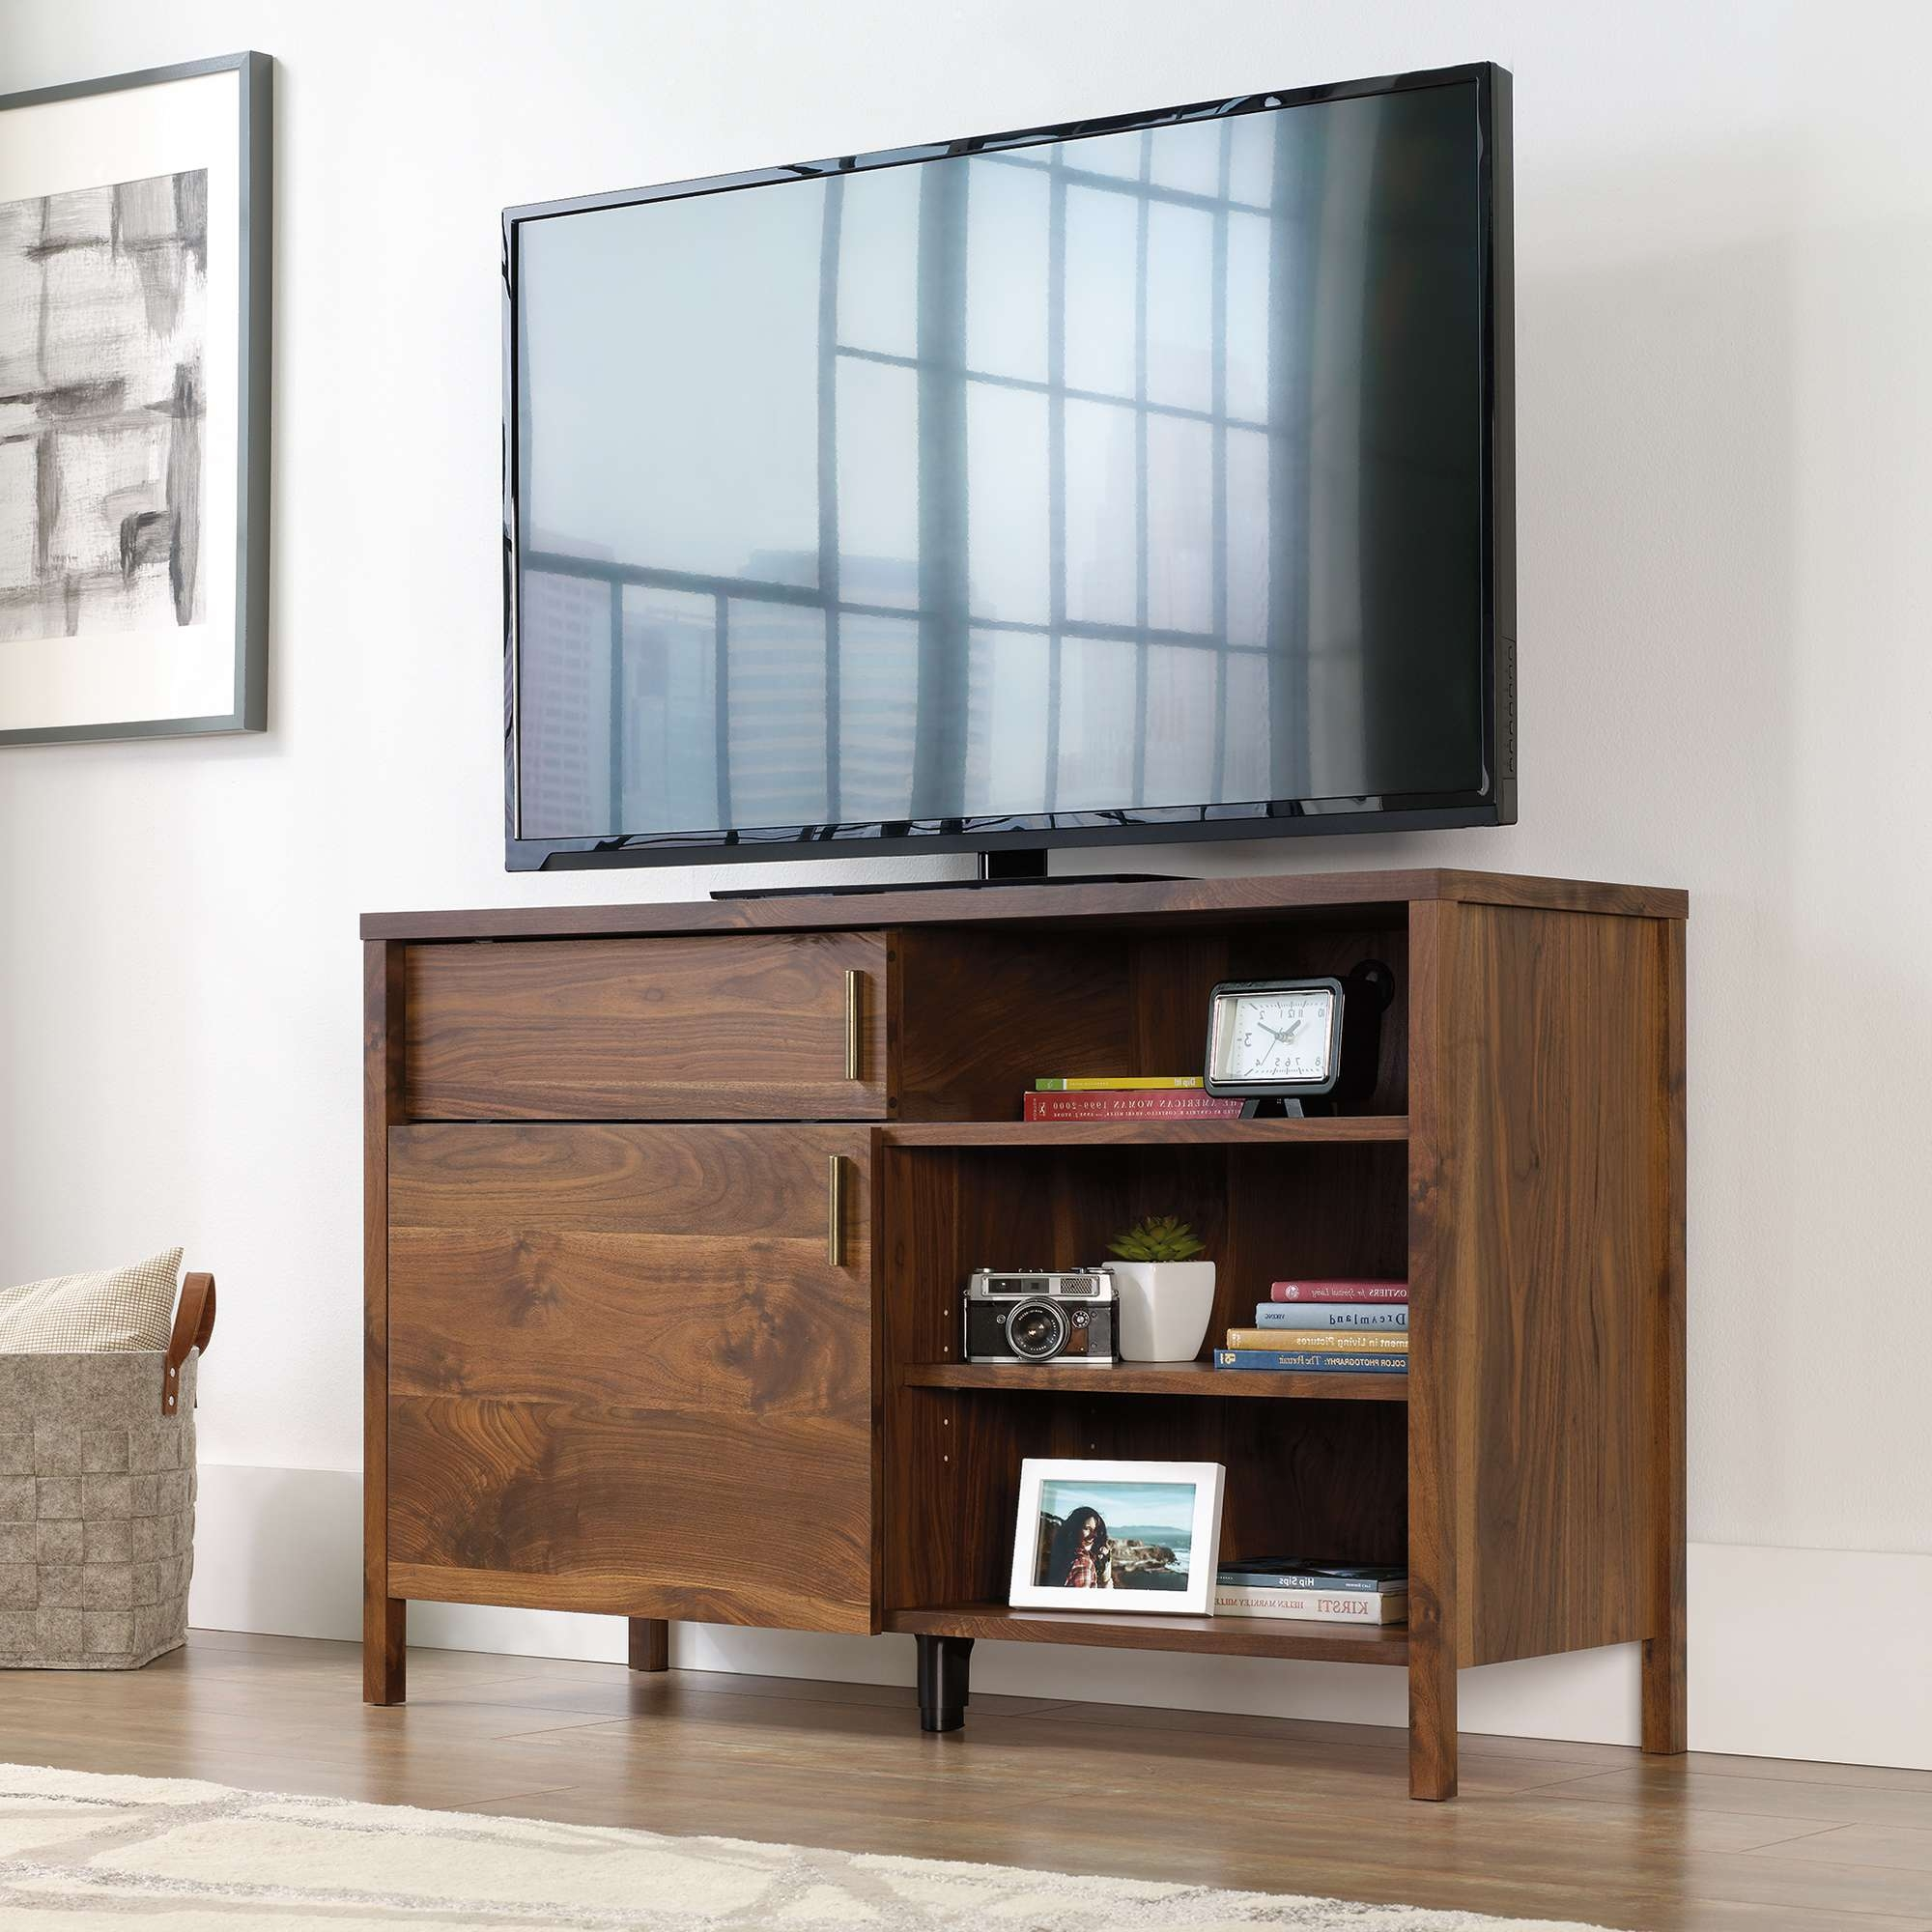 Harvey Park | Tv Stand | 421982 | Sauder Pertaining To Harveys Wooden Tv Stands (View 12 of 15)